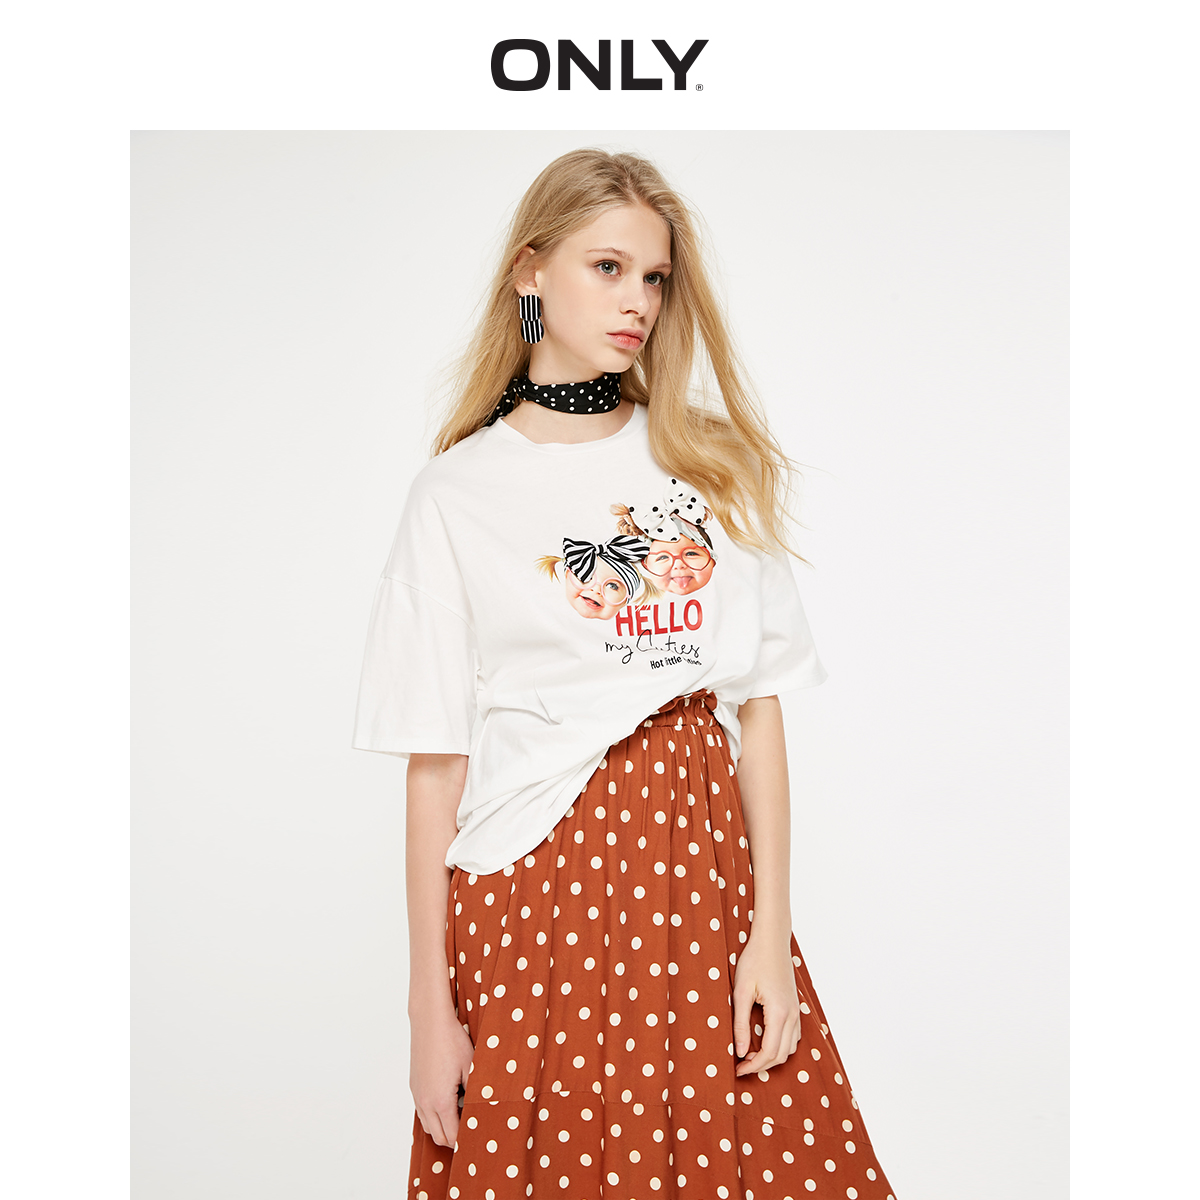 ONLY  Spring Summer Women's Bowknot Loose Fit Elbow Sleeves T-shirt  119101635